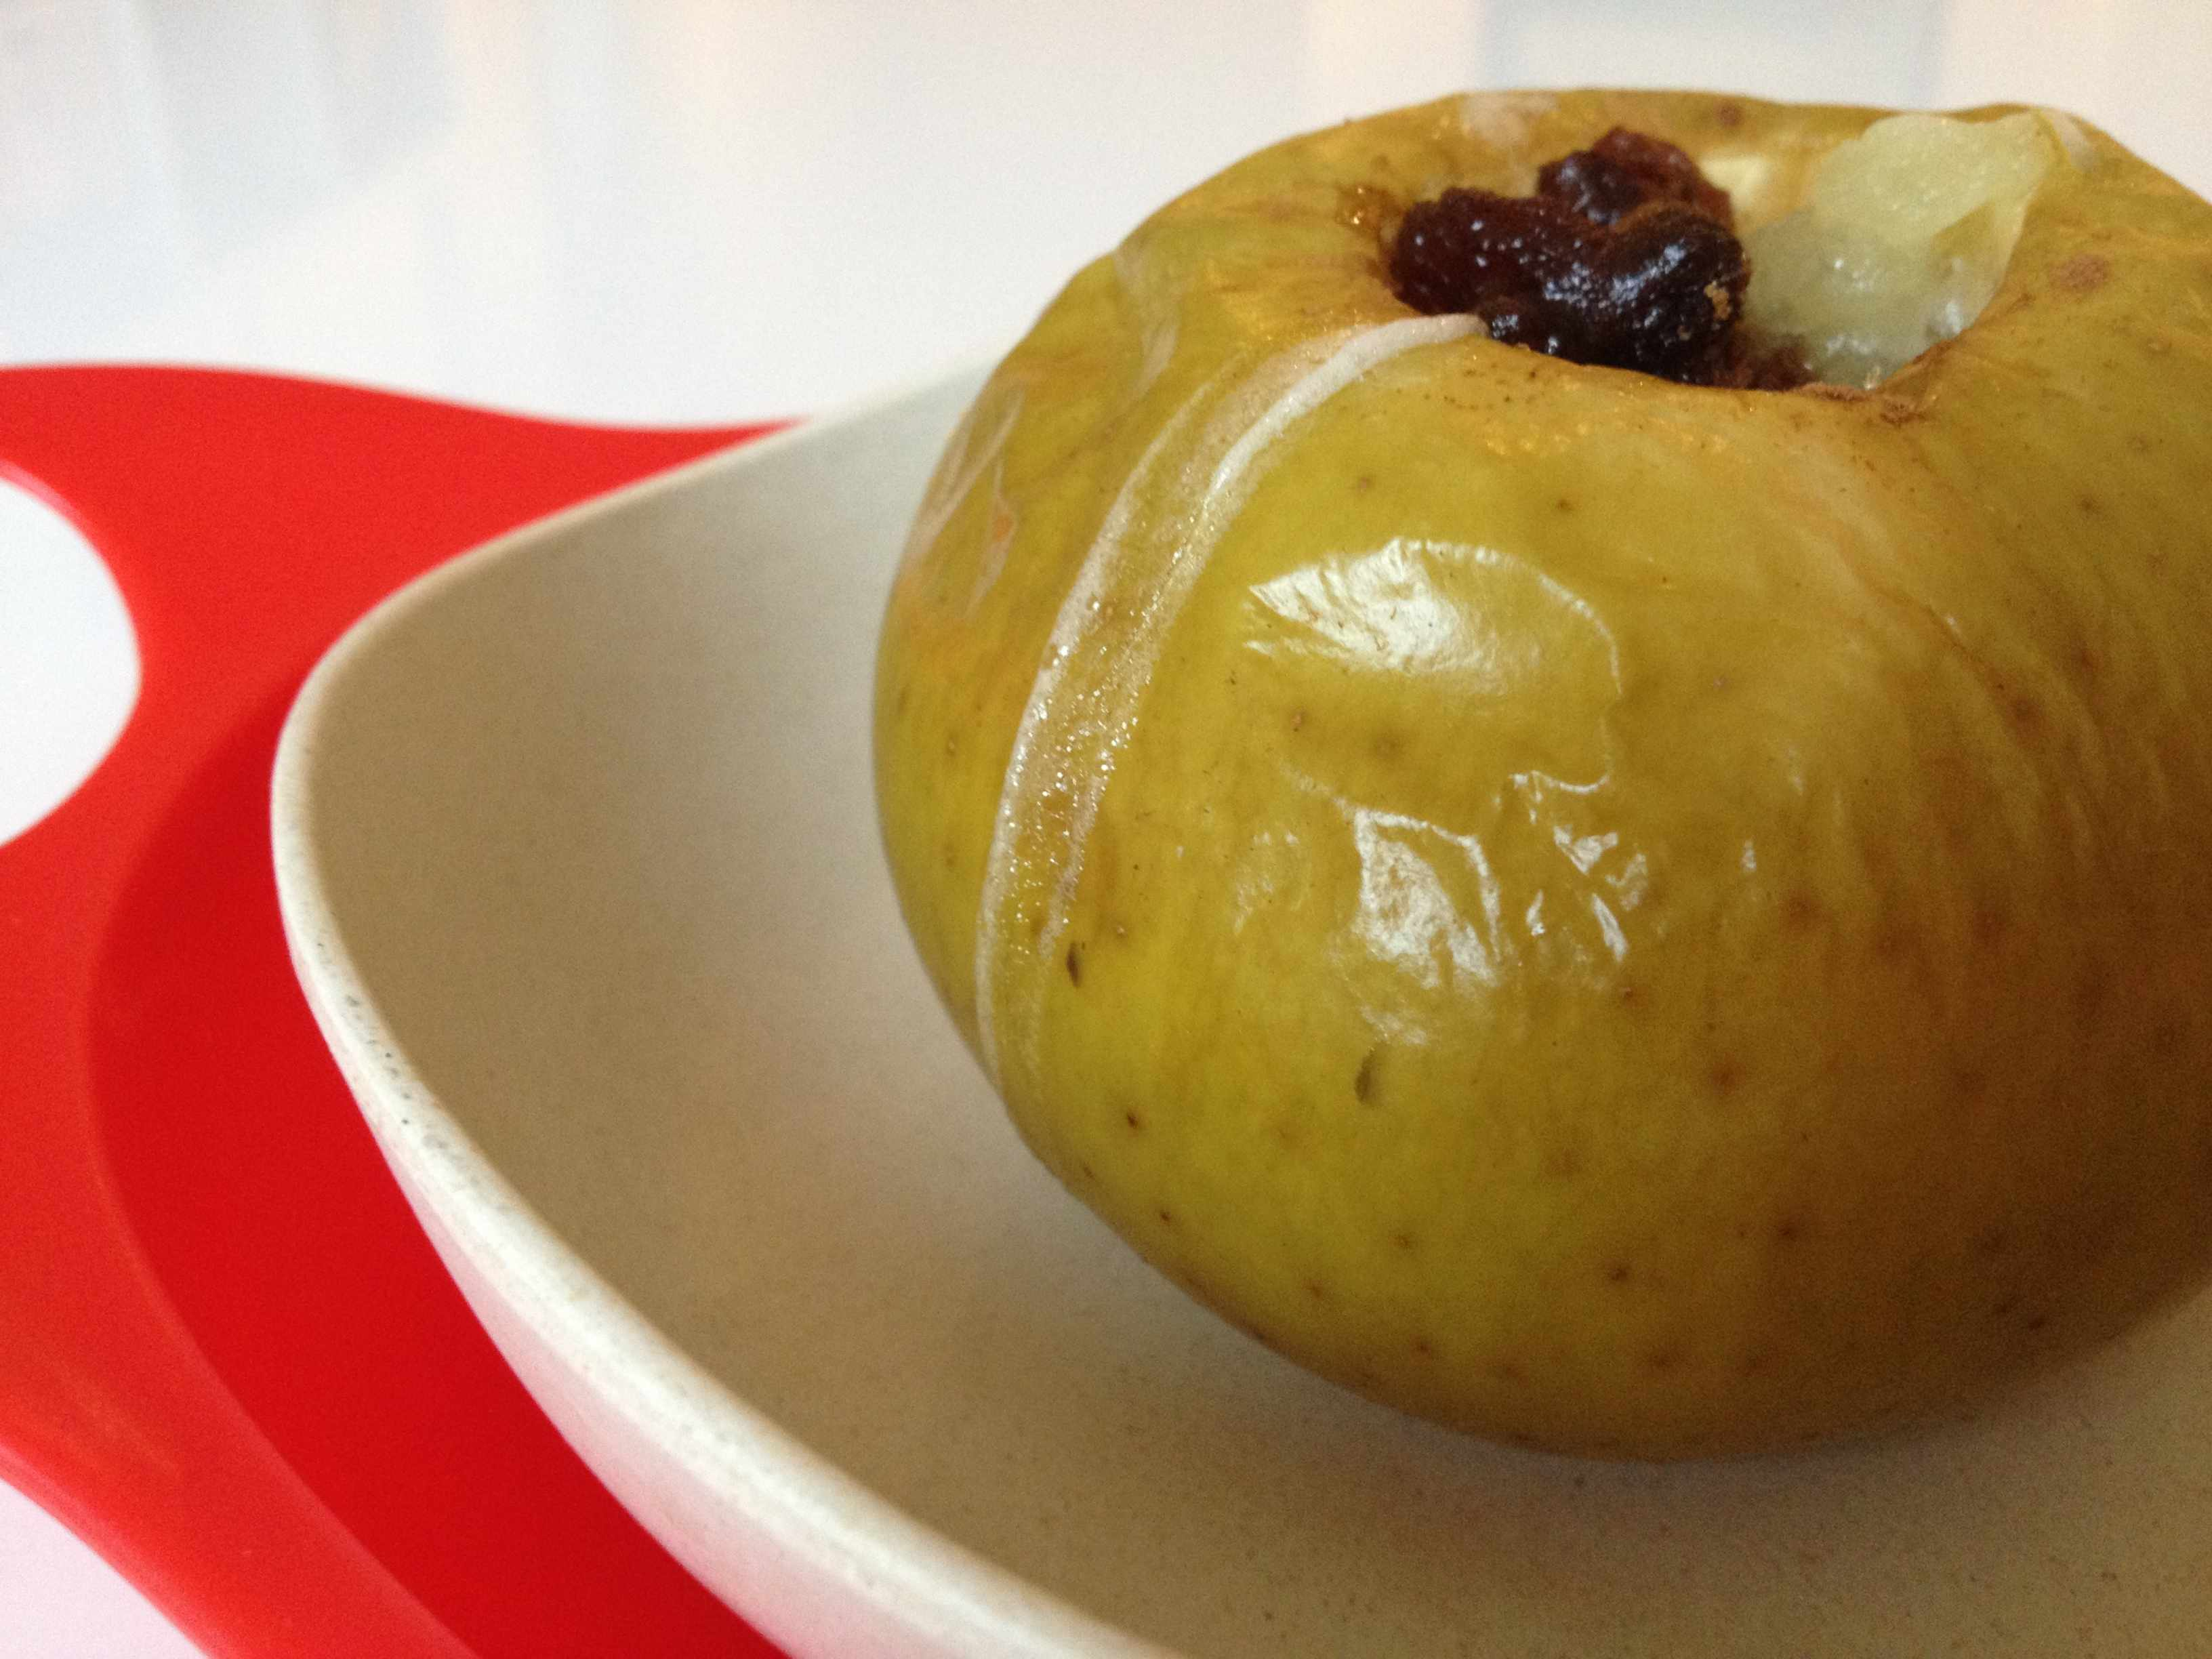 baked-apple-with-raisins-and-fromage-frais_48752